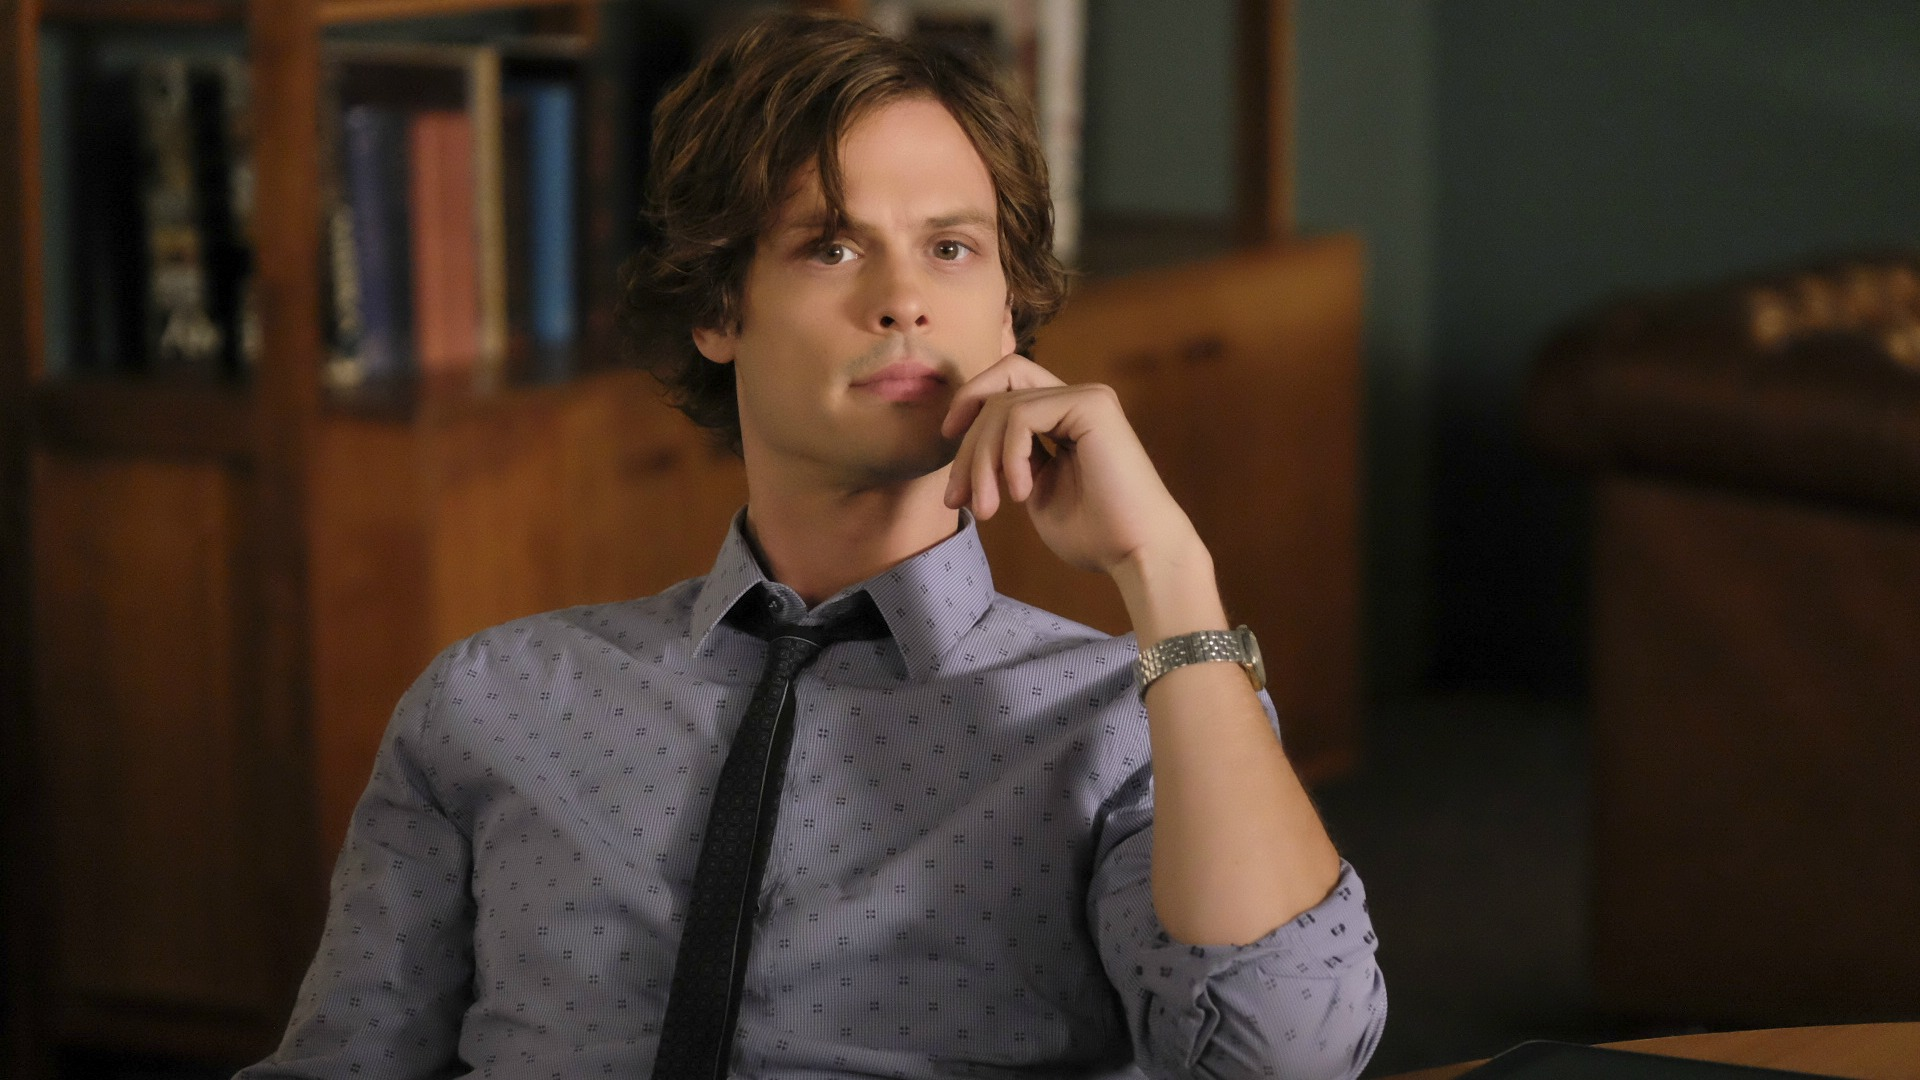 Dr. Spencer Reid is deep in thought.